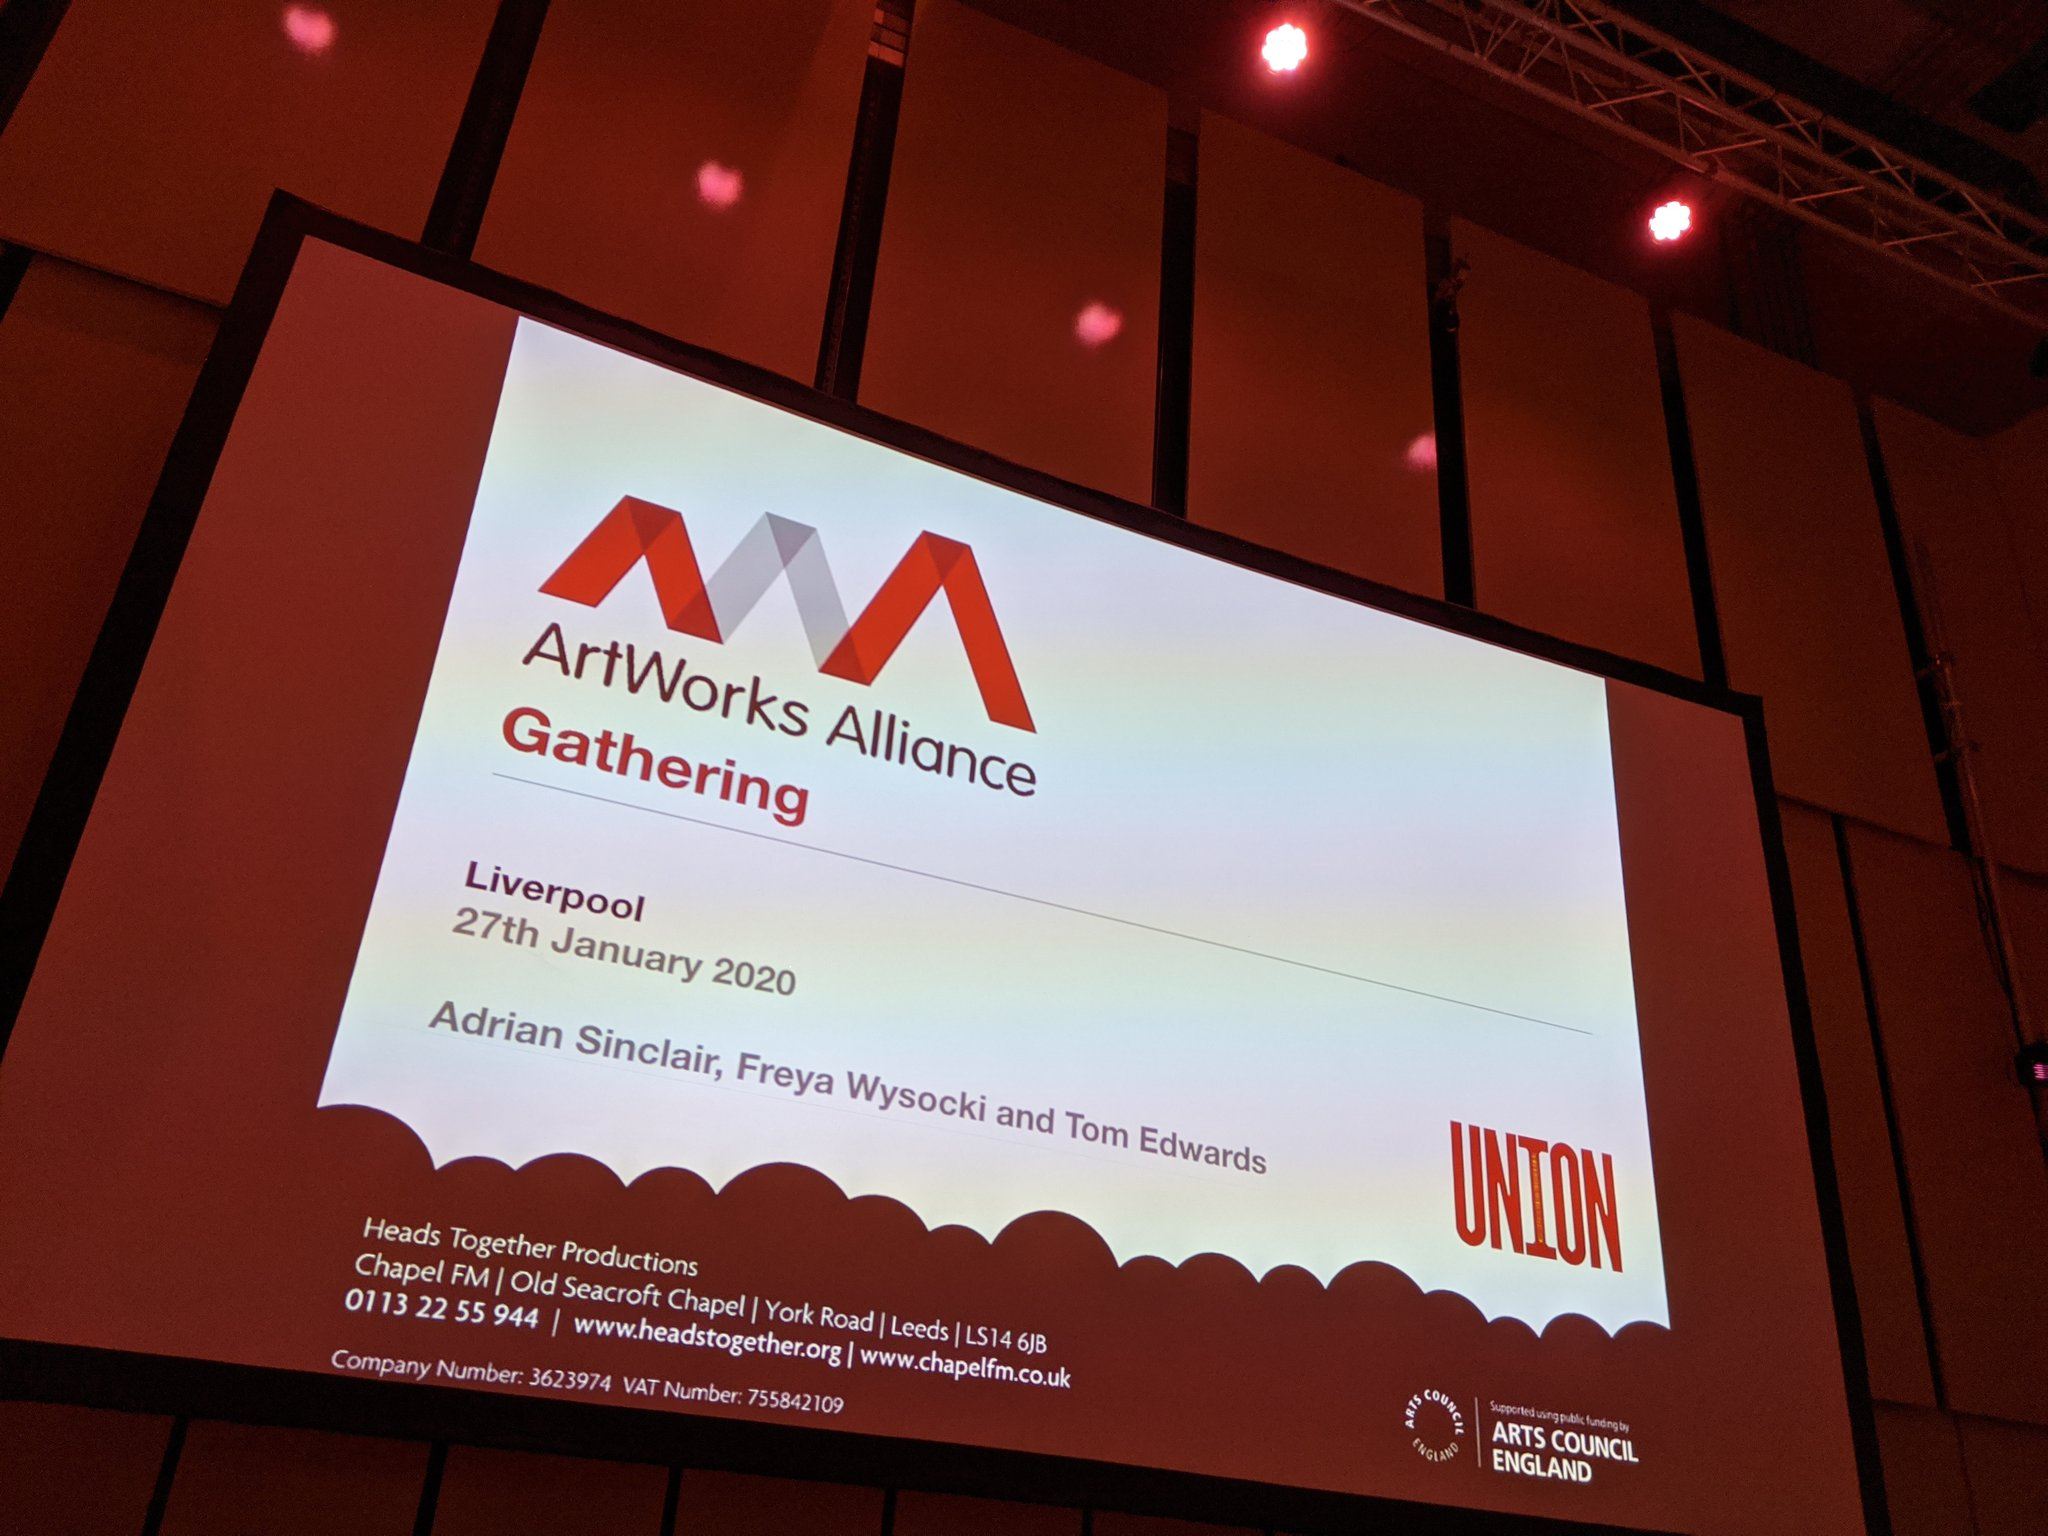 ArtWorks Alliance Gathering January 2020 report